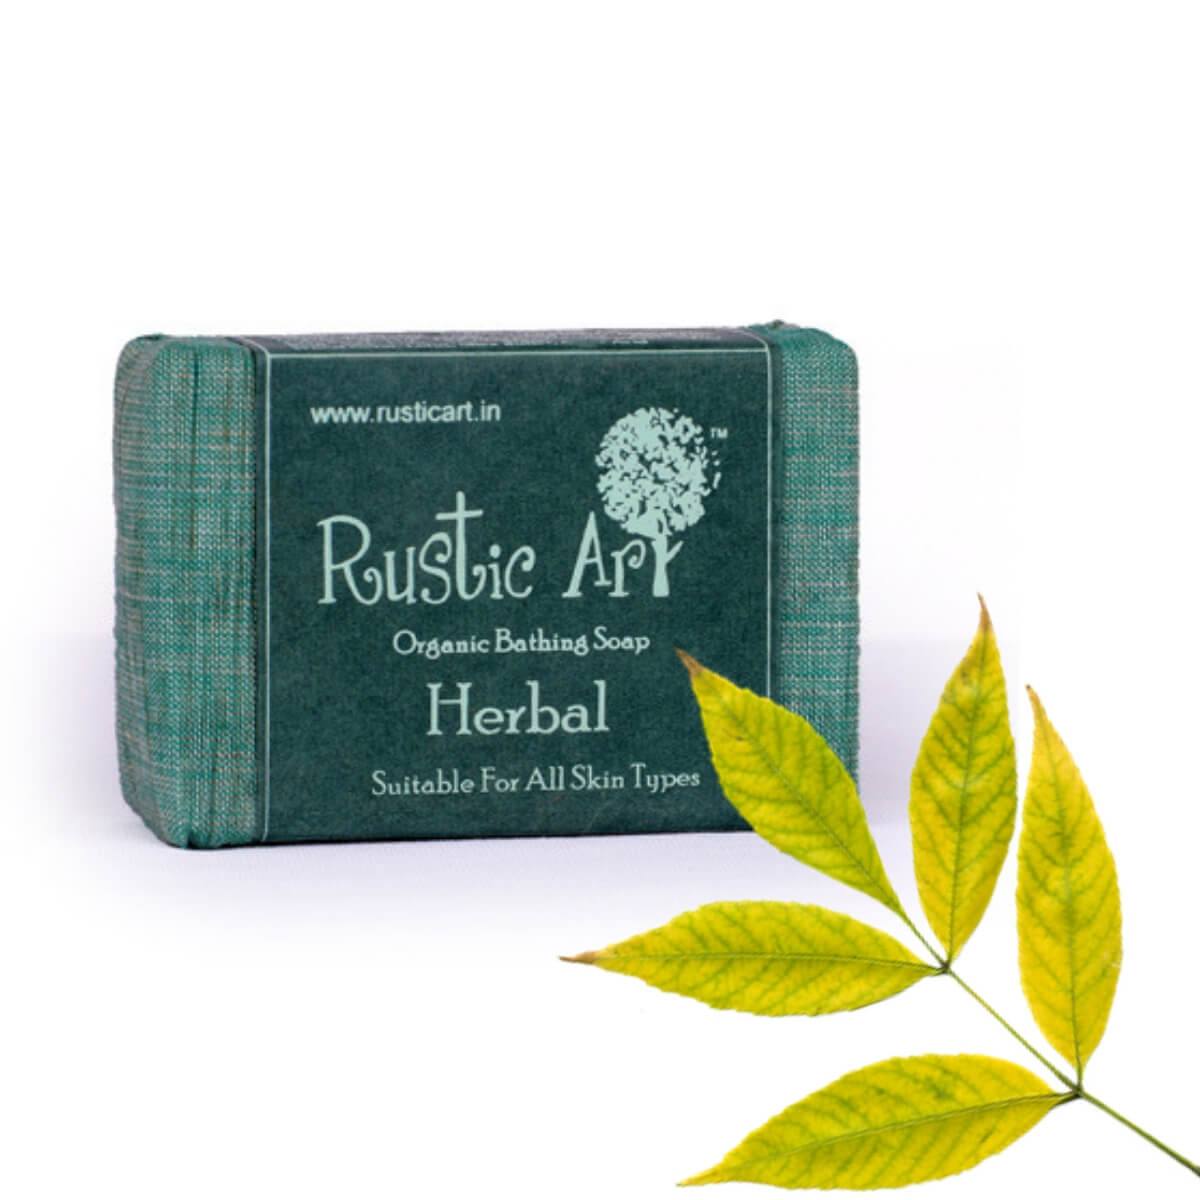 Buy Rustic Art Organic Herbal Soap products online in India